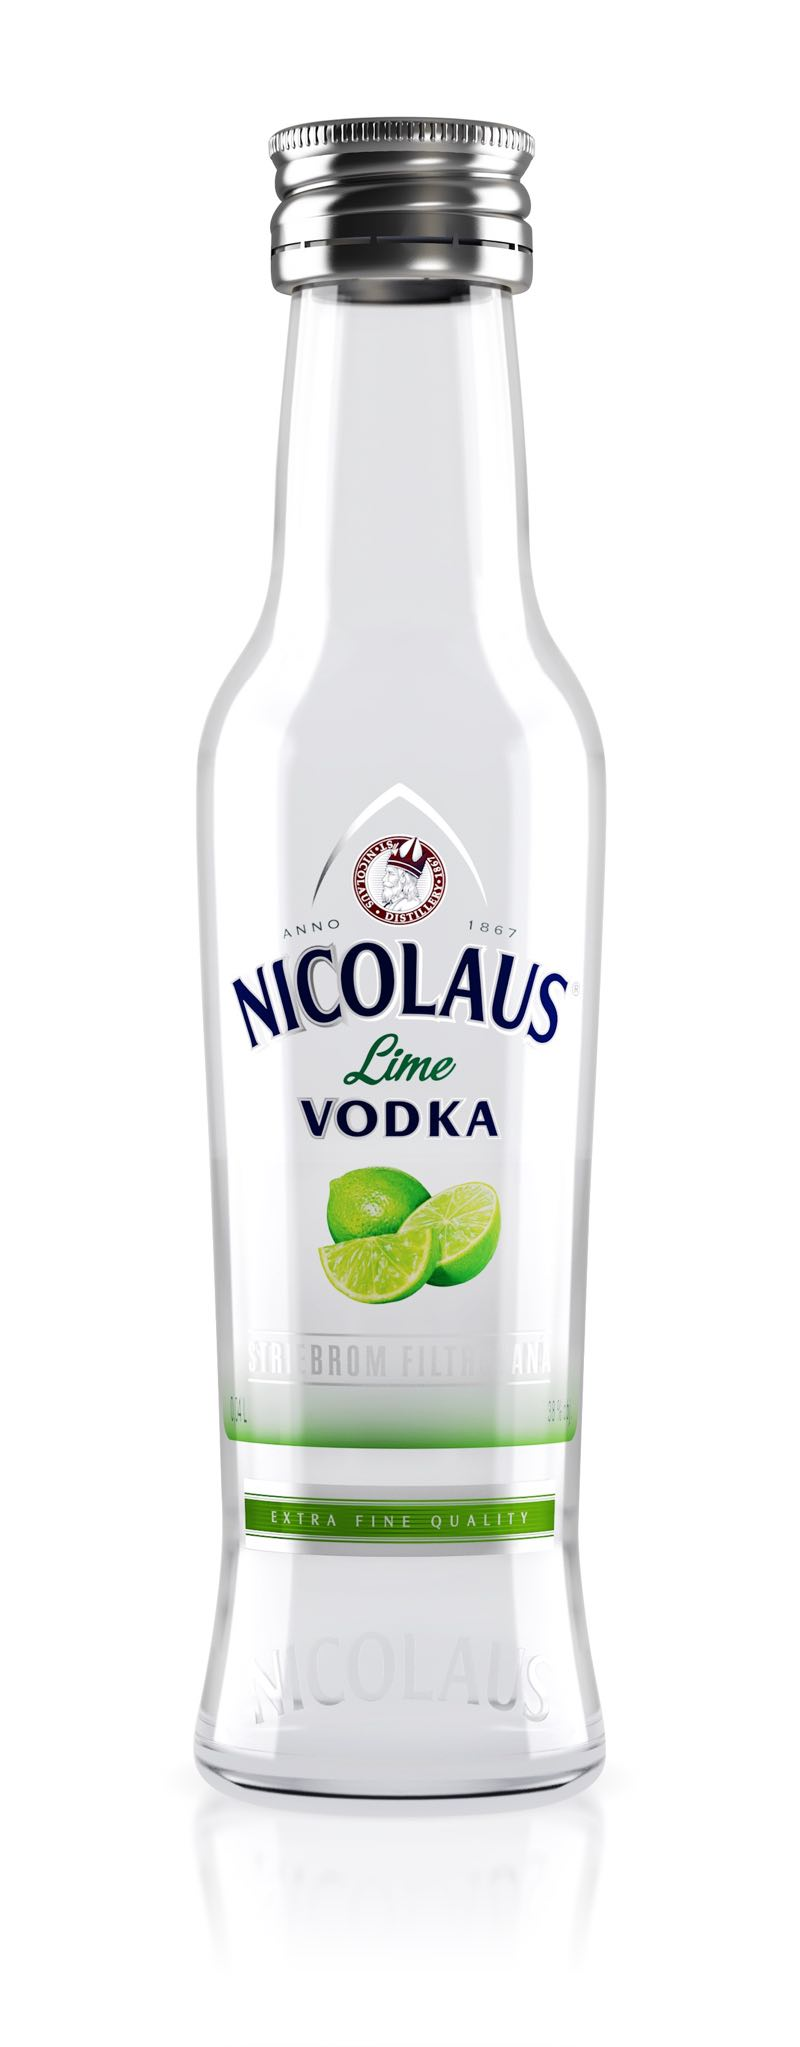 Nicolaus Lime Vodka 38% 0,04l